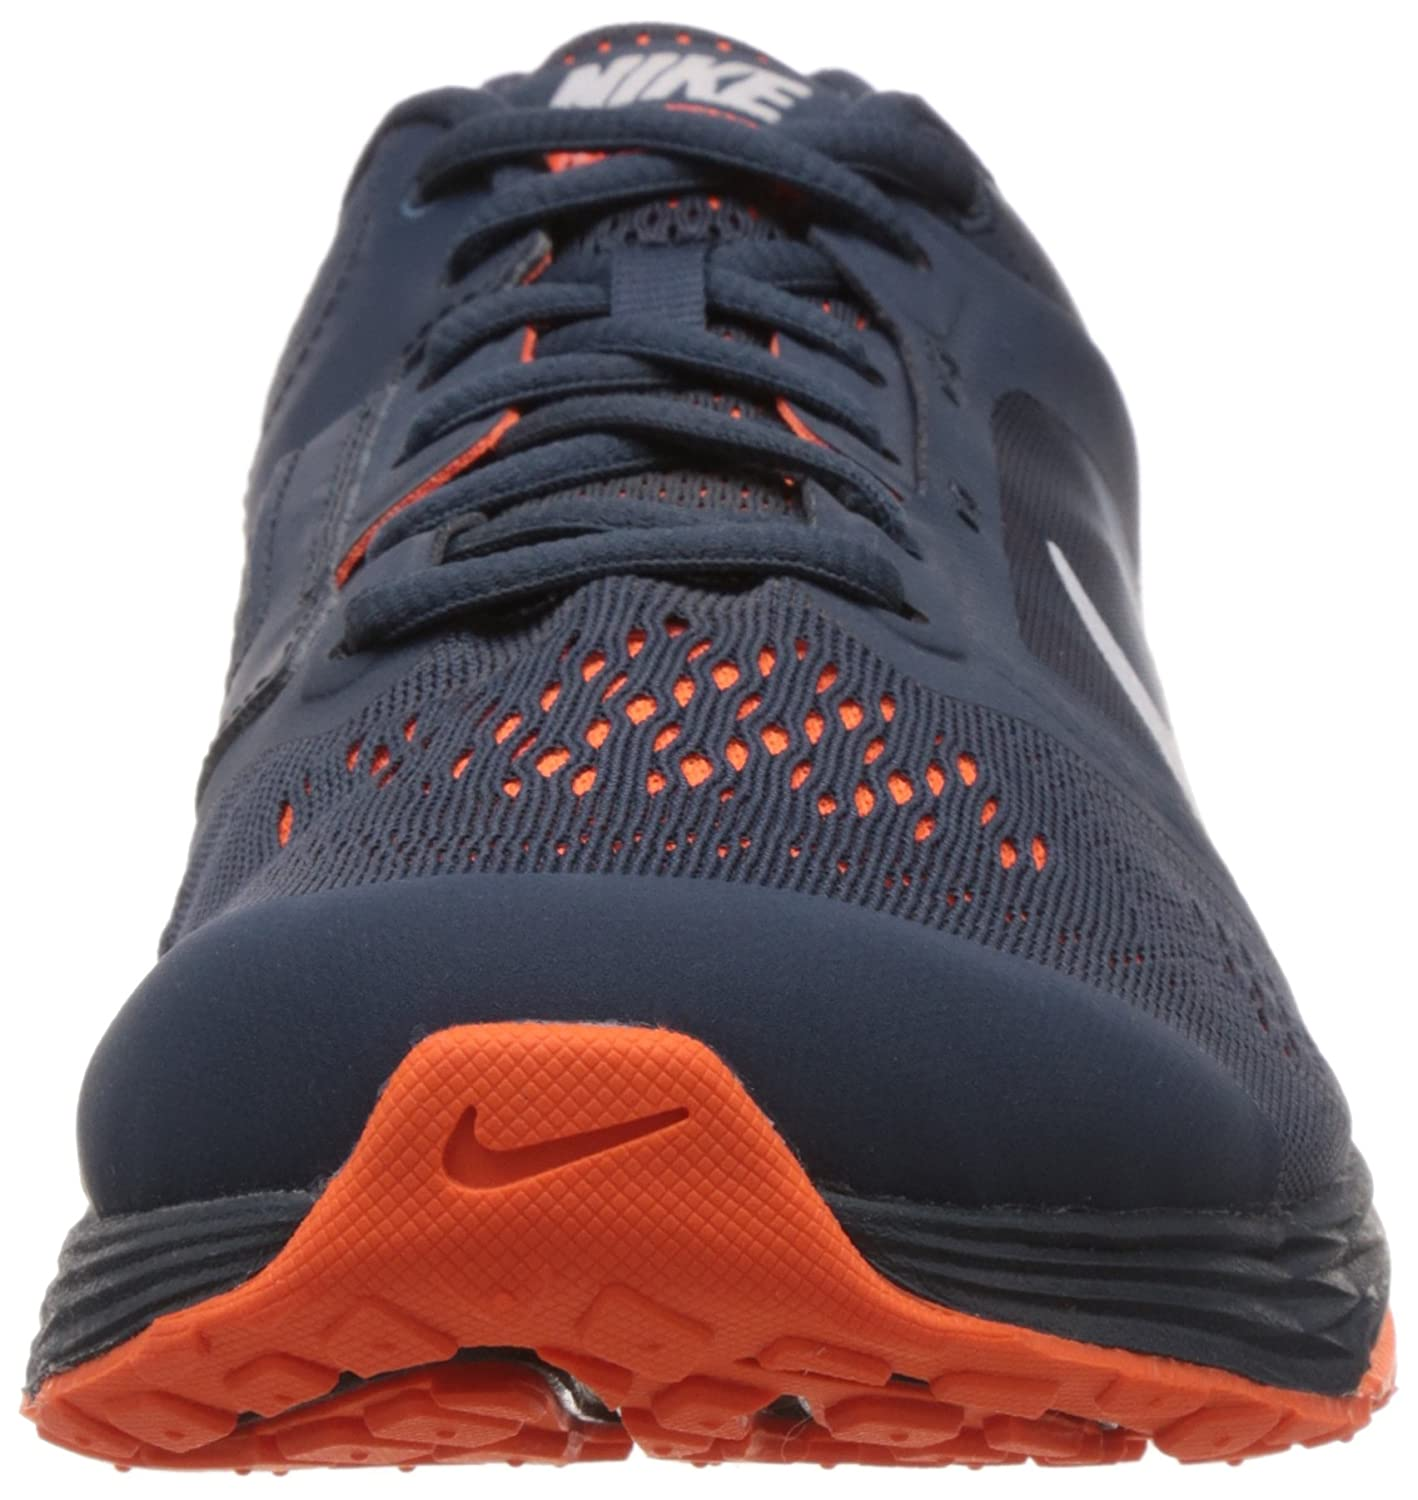 finest selection 0bef7 f3d94 Nike Men s TRI Fusion Run MSL, Squadron Blue White-Total Orange, 10.5 M US   Amazon.ca  Shoes   Handbags